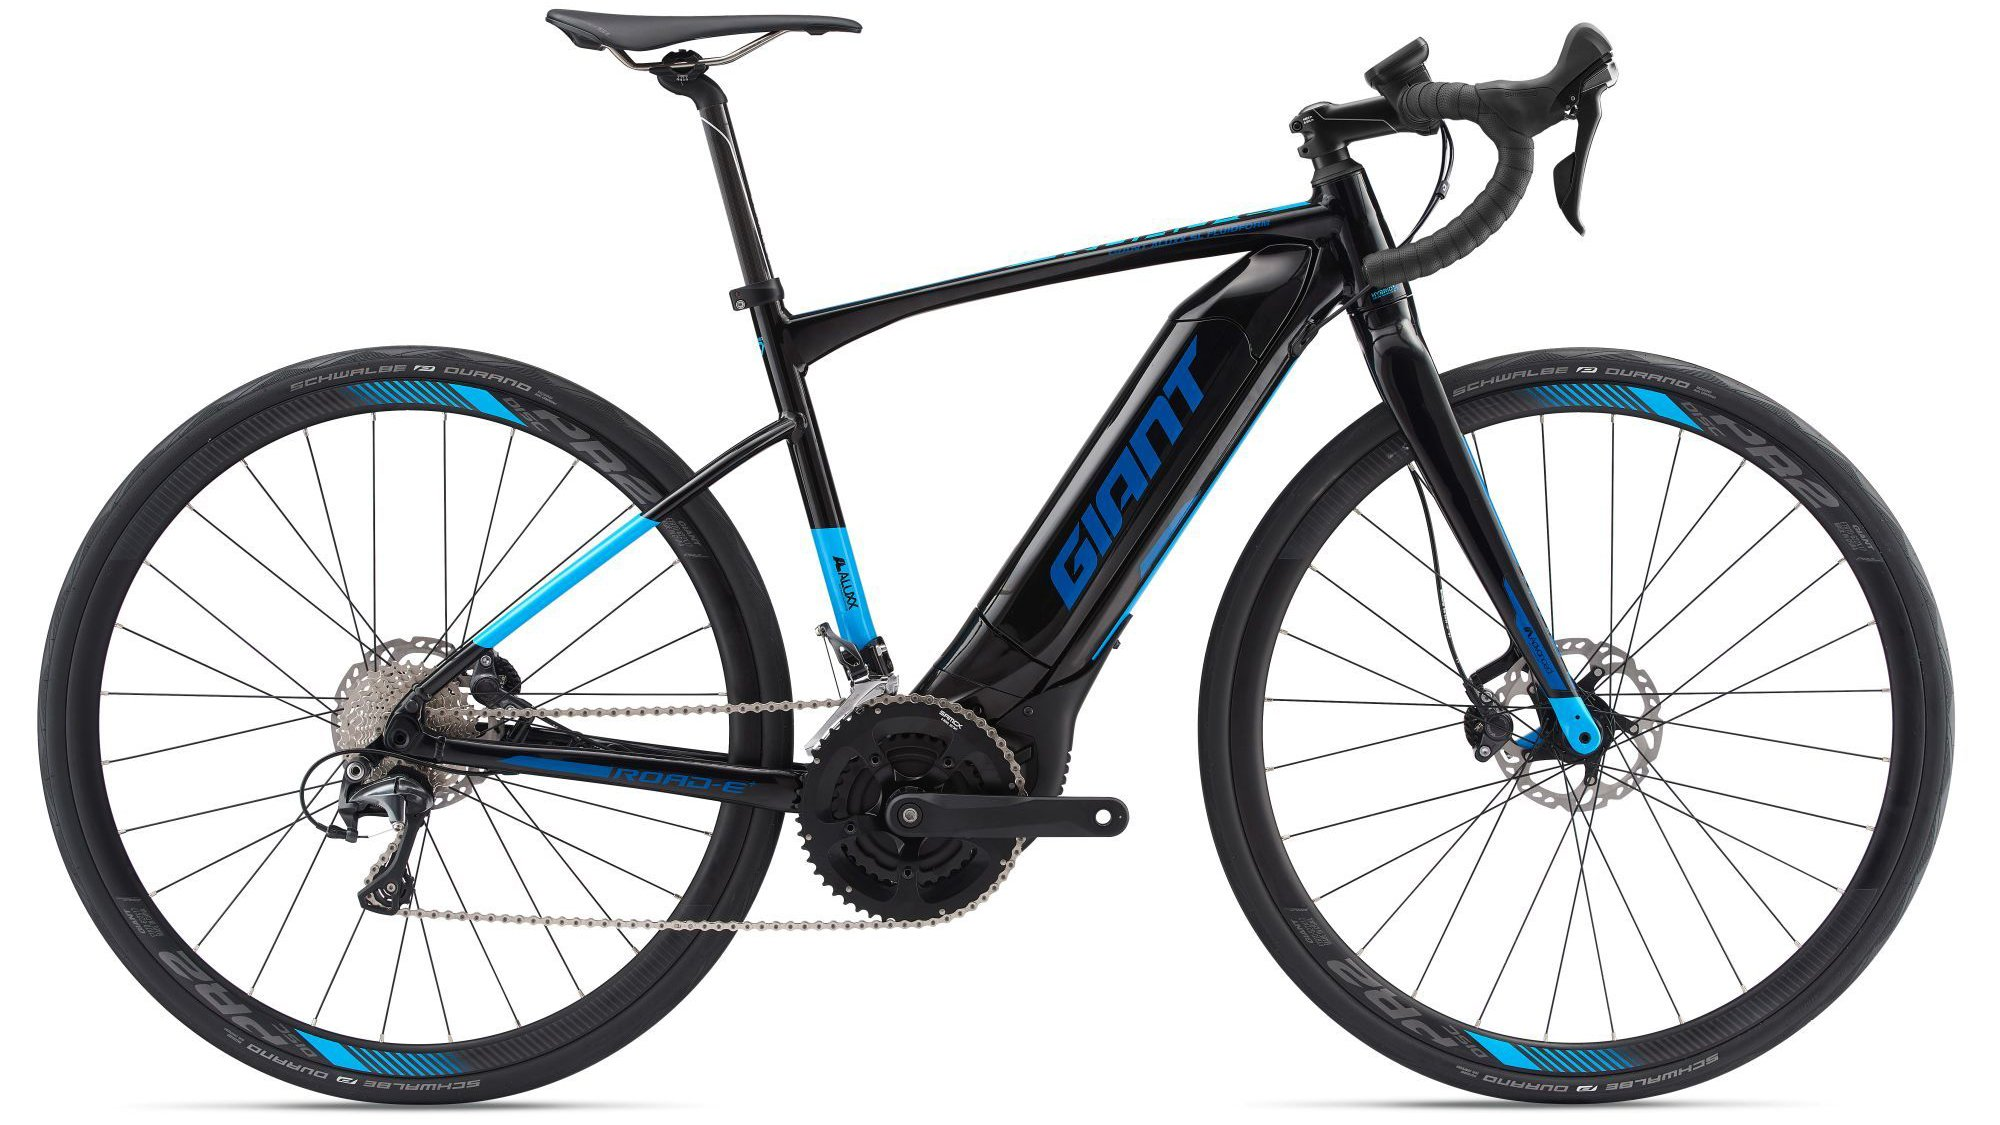 The Giant Road E 1 Line Has Always Been At Forefront Of Bikes And Latest Edition Is Lightest Best Version Yet